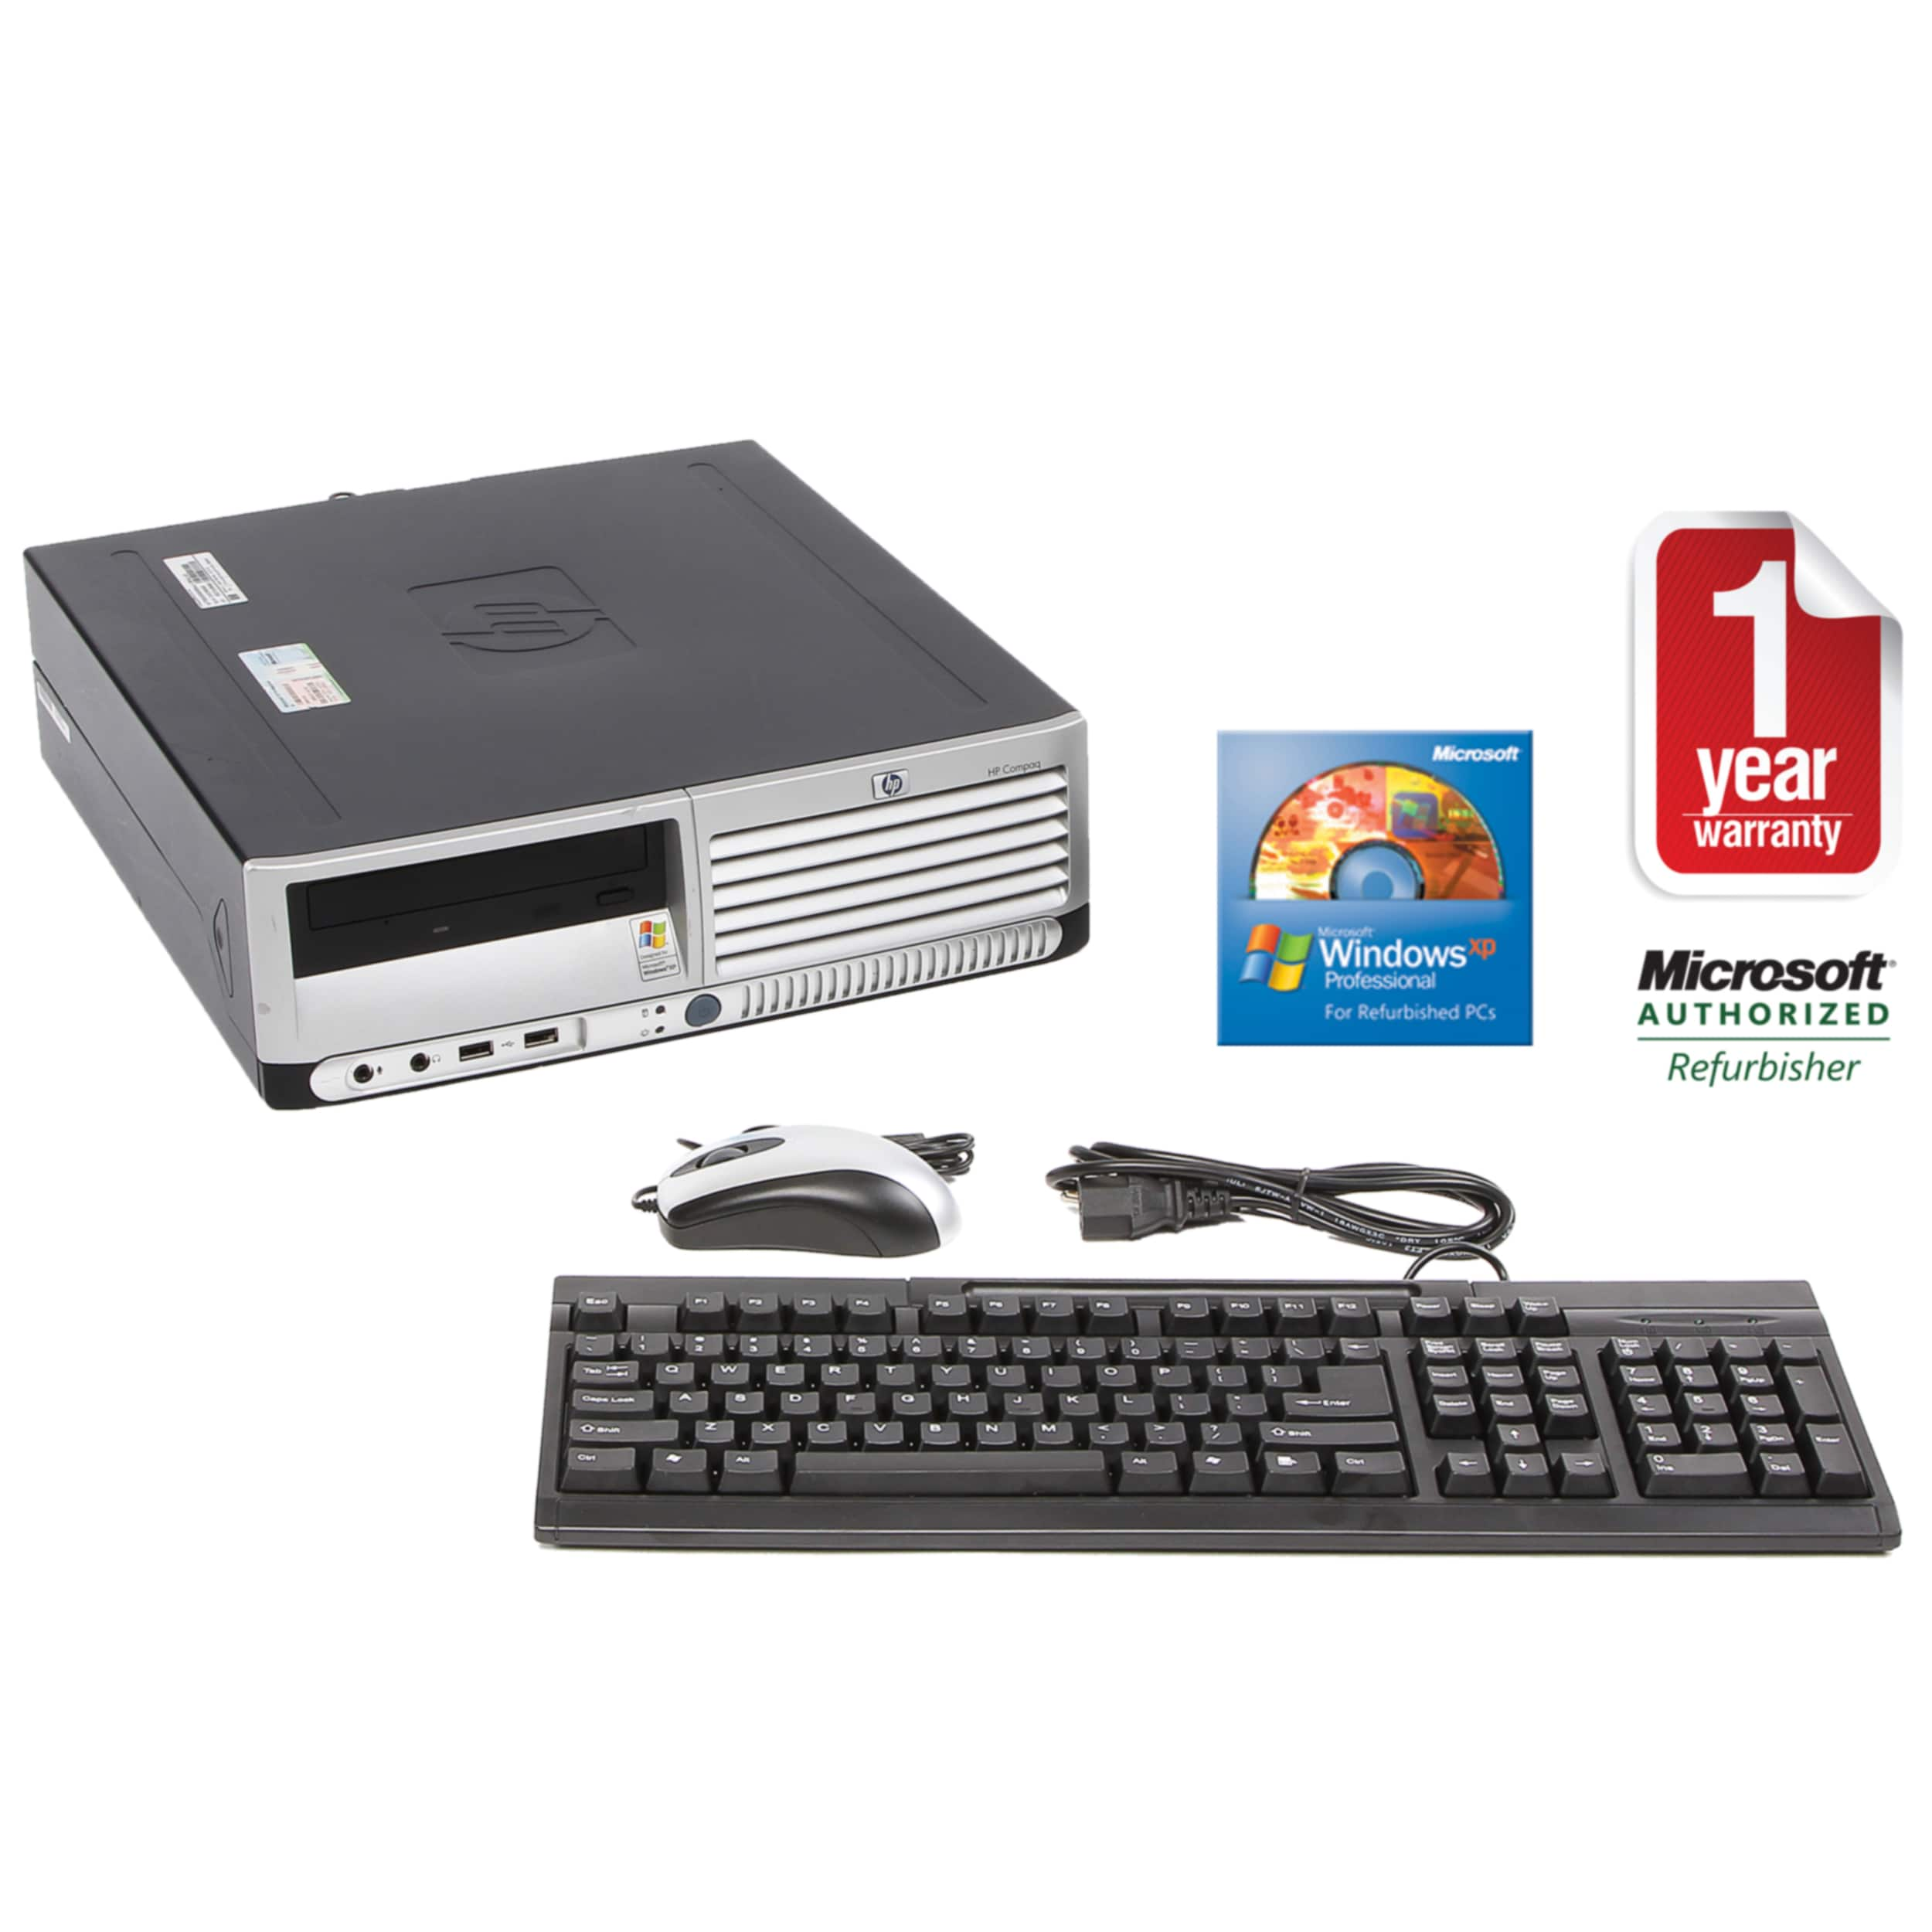 HP Compaq DC5100 3.06GHz 80GB SFF Computer (Refurbished)